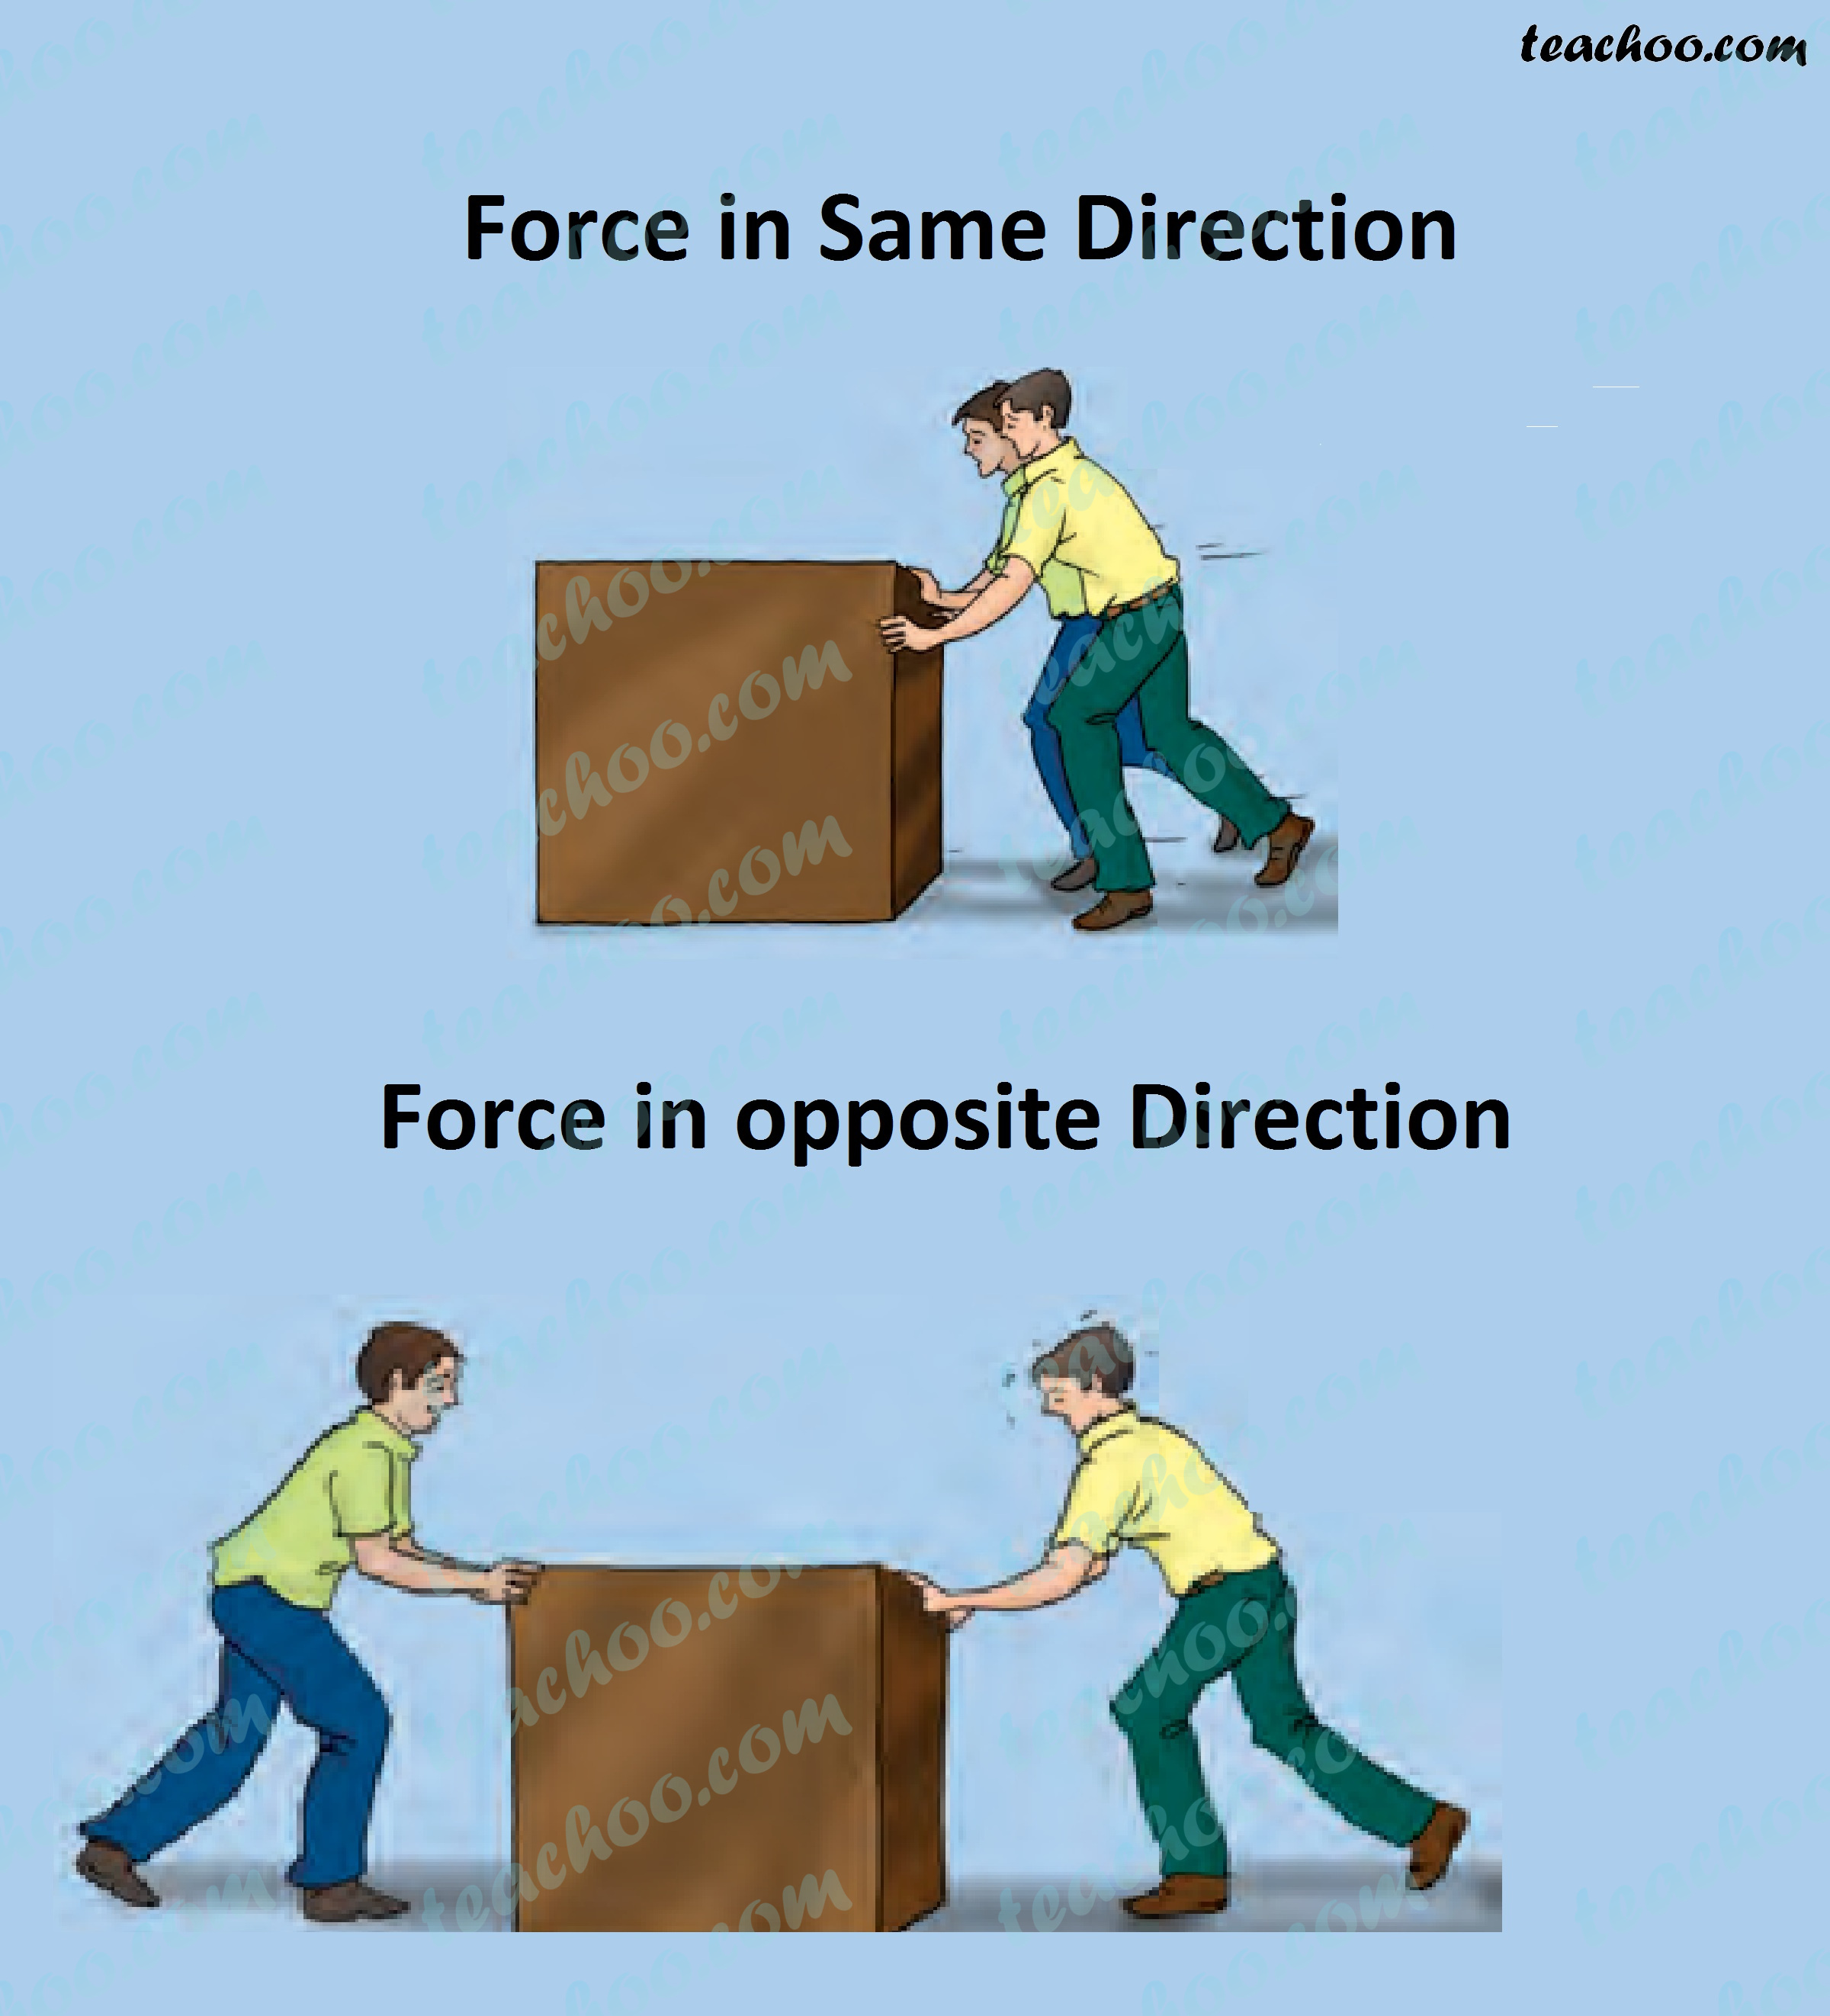 force-in-same-direction.jpg